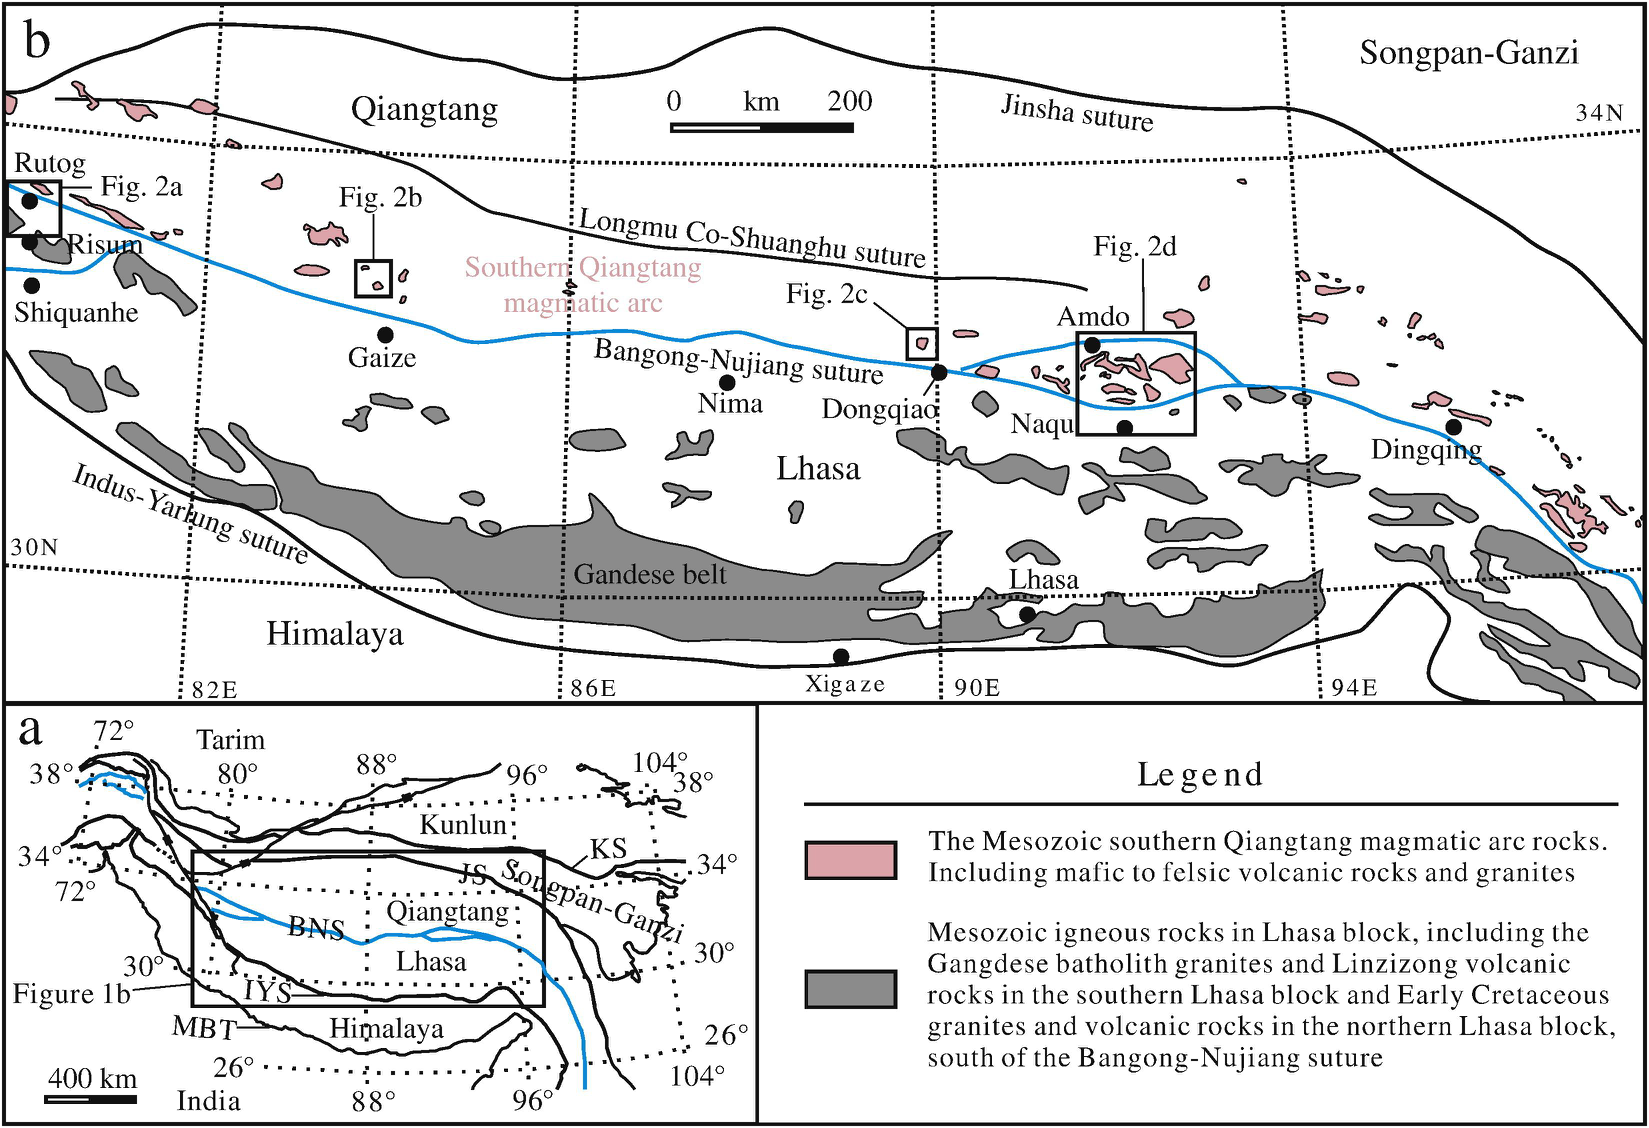 The Zircon Hf isotope of tranites in South Qiangtang of the Tibetan Plateau (2014)